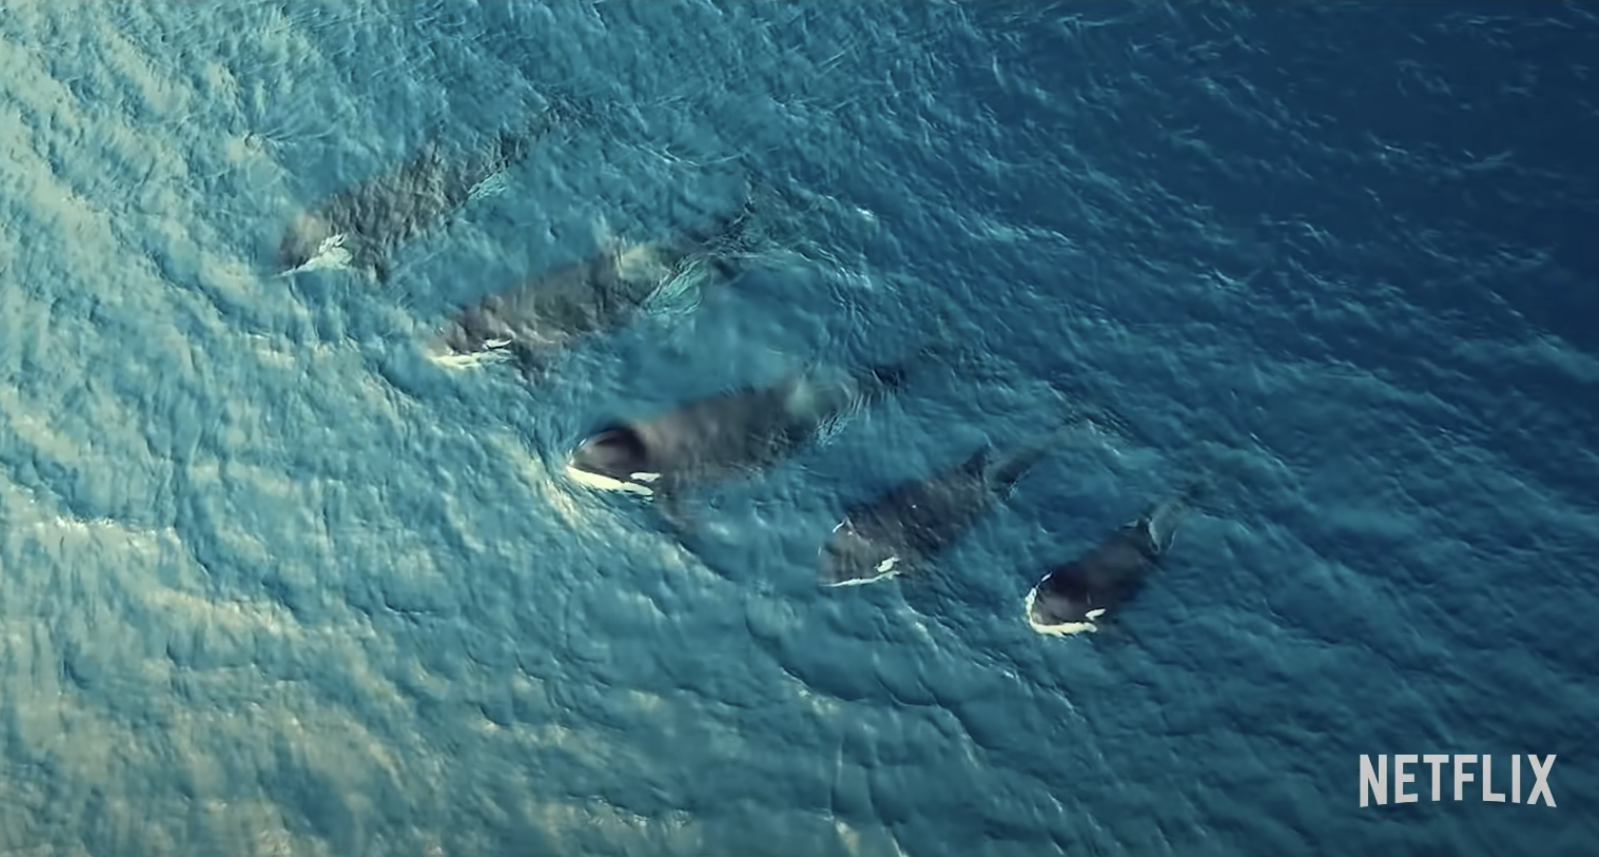 five orca whales in the ocean